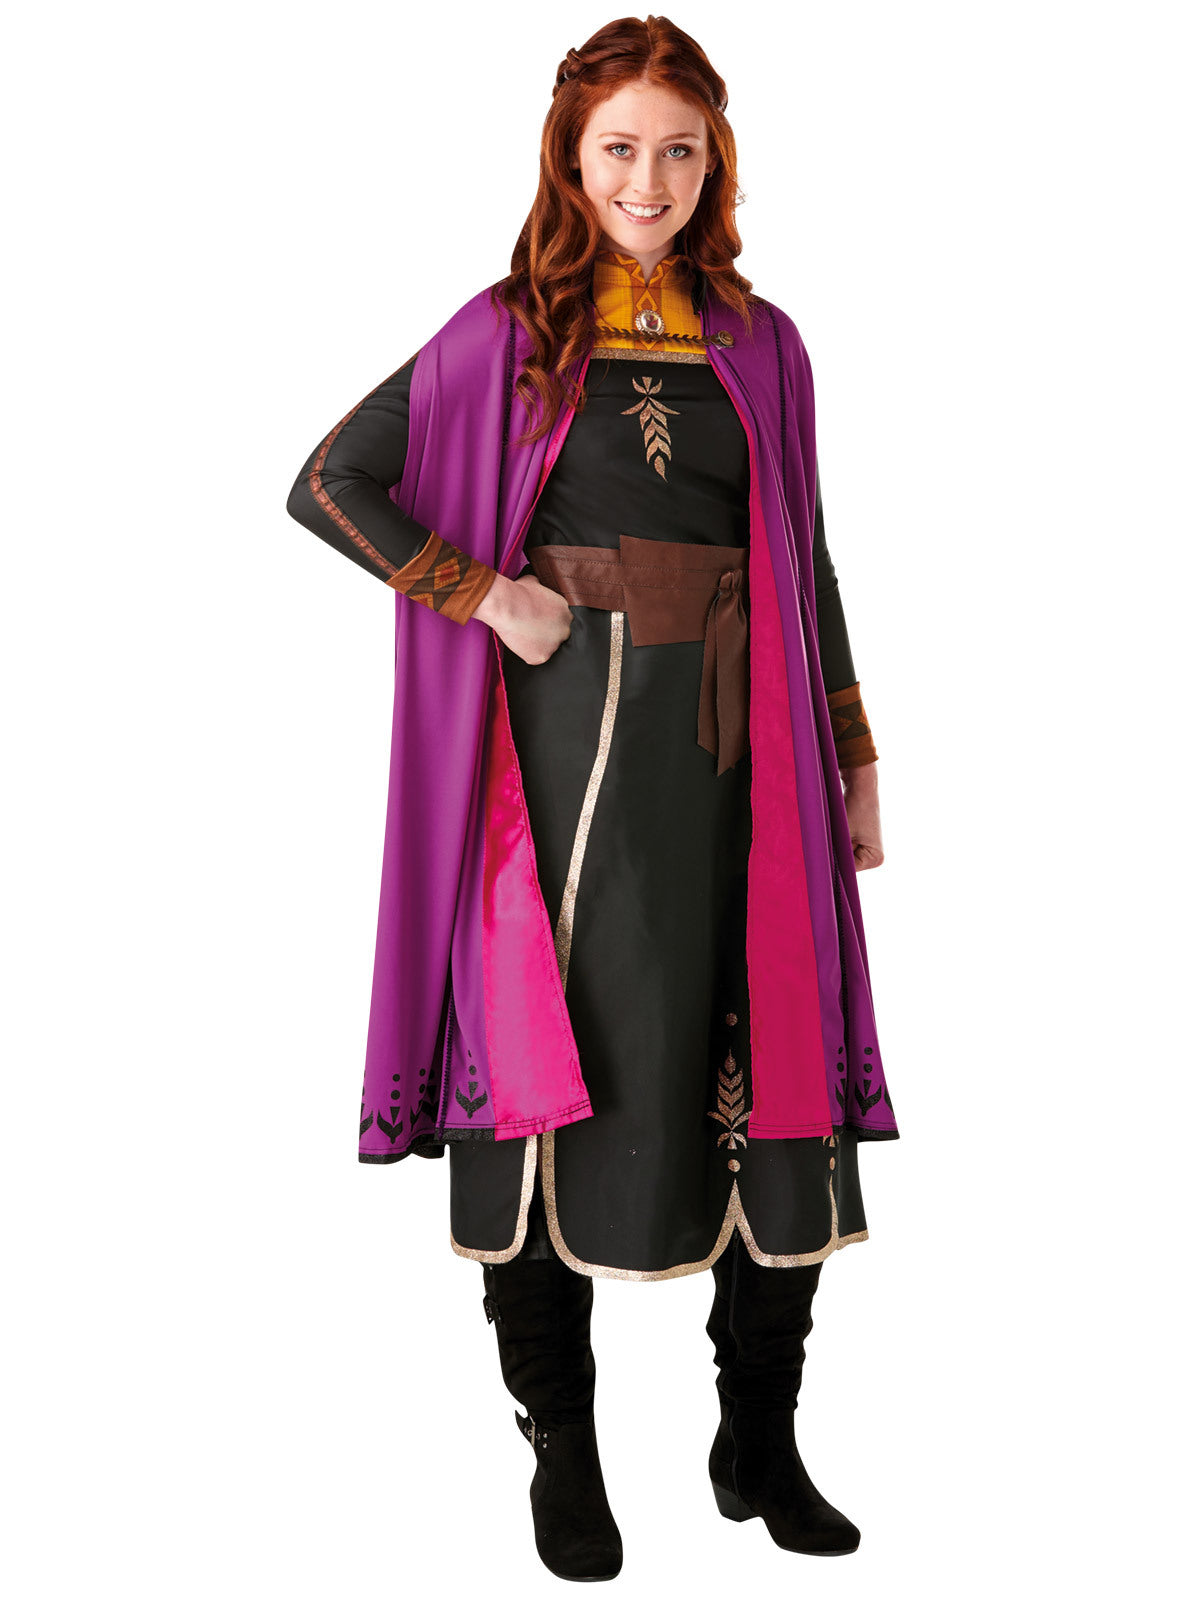 Anna Deluxe Frozen 2 Costume - Buy Online Only